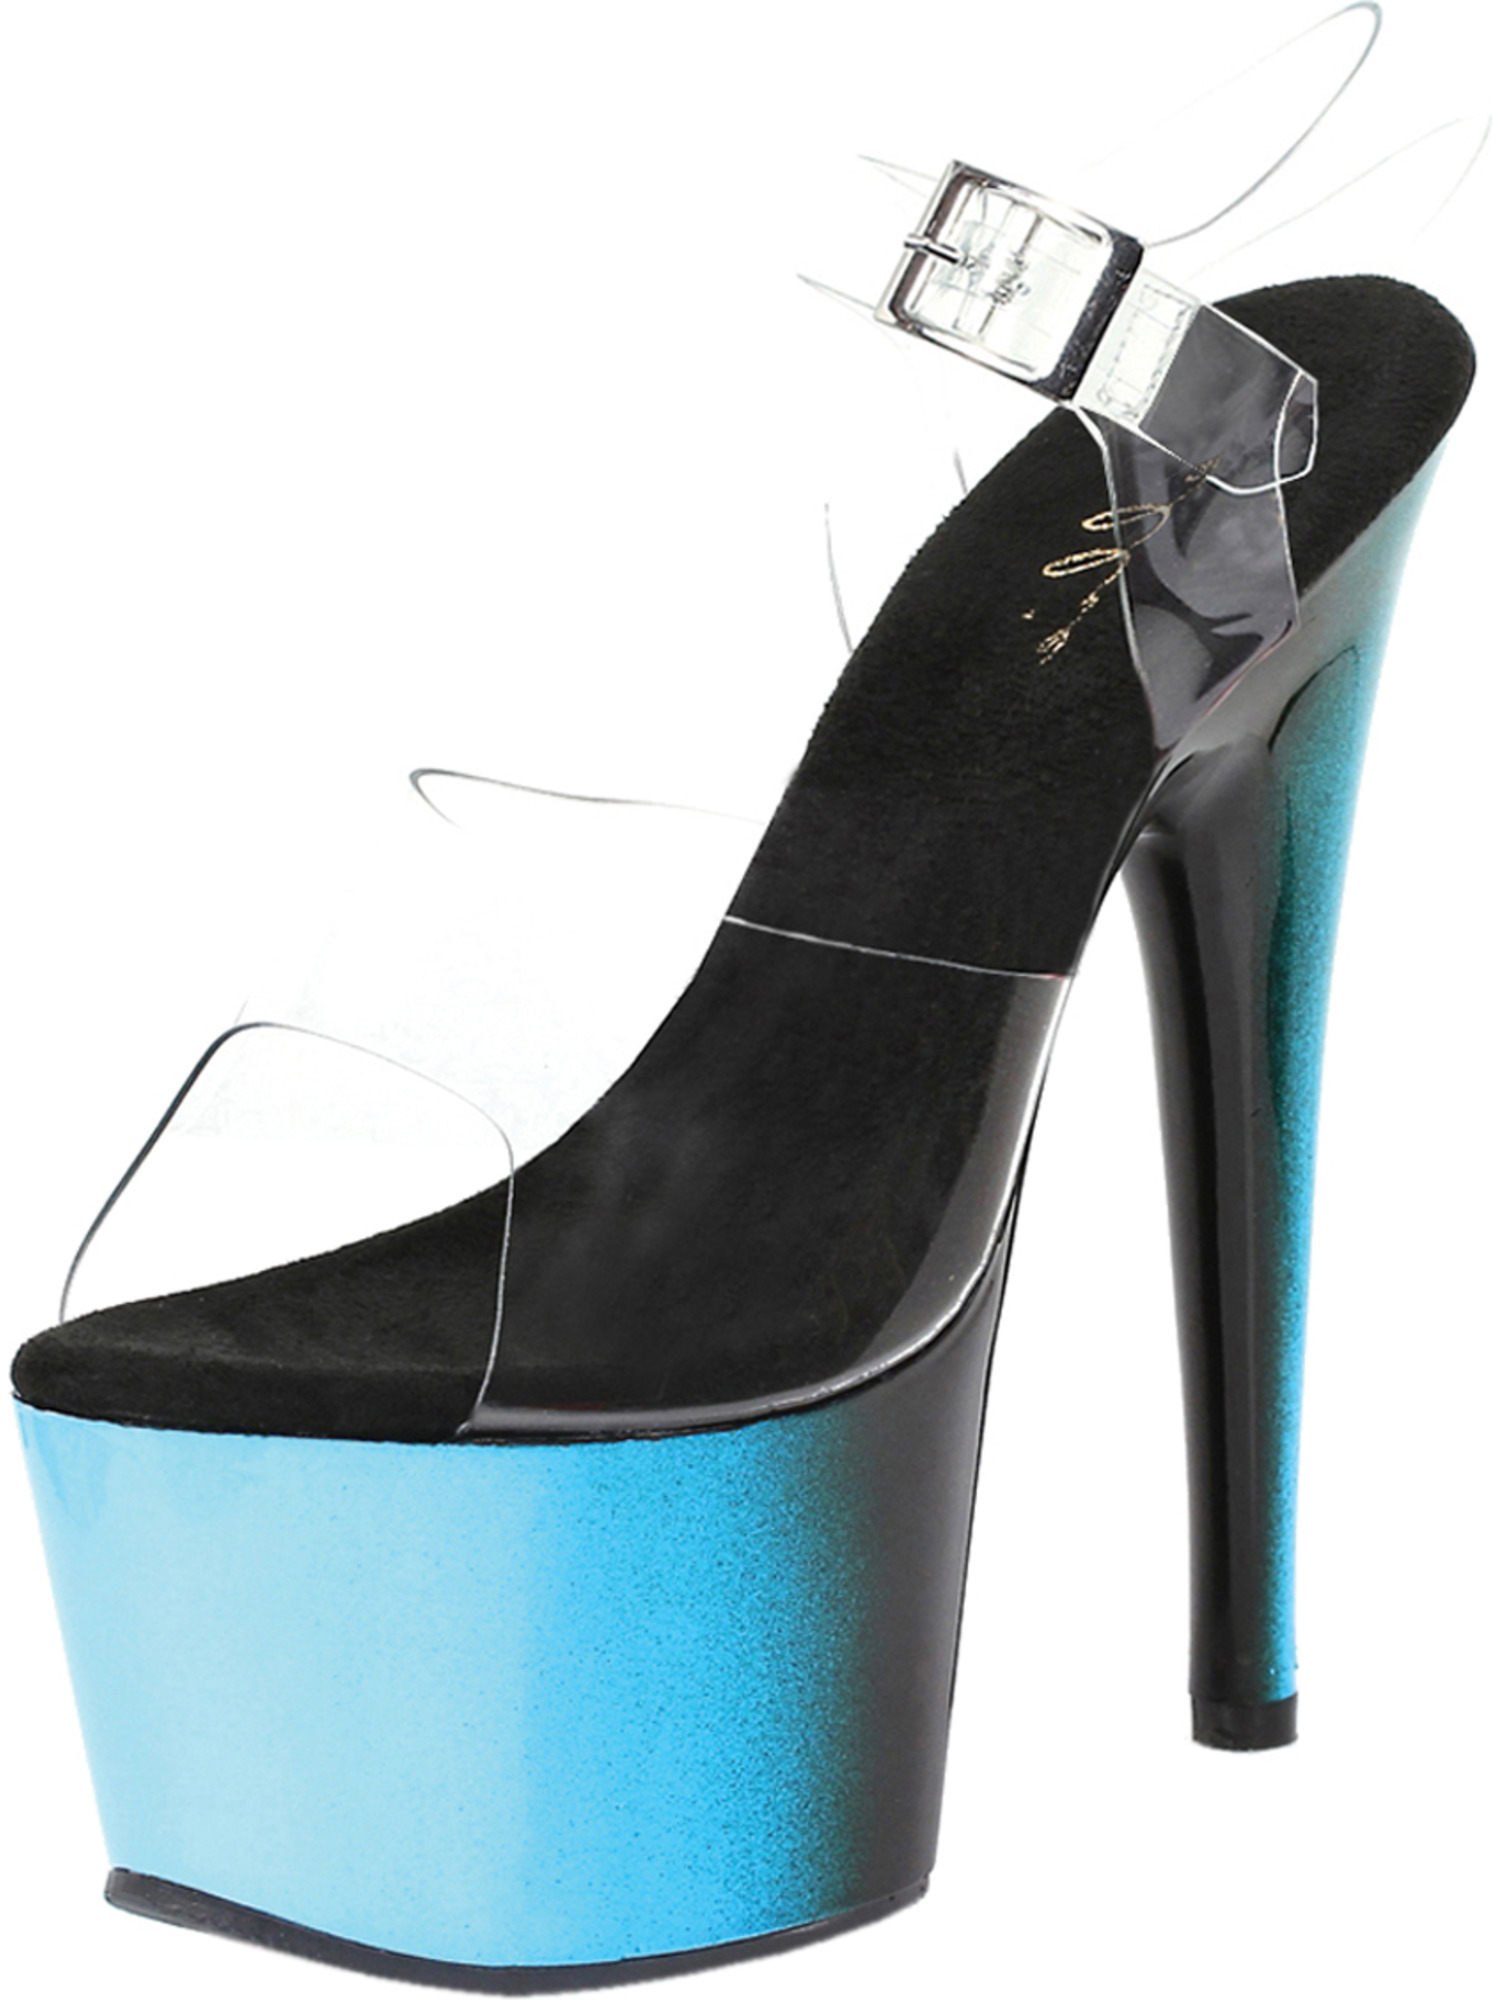 Womens Ankle Strap High Heels Blue Shoes Pink Sandals Purple Ombre 7 Inch Heels